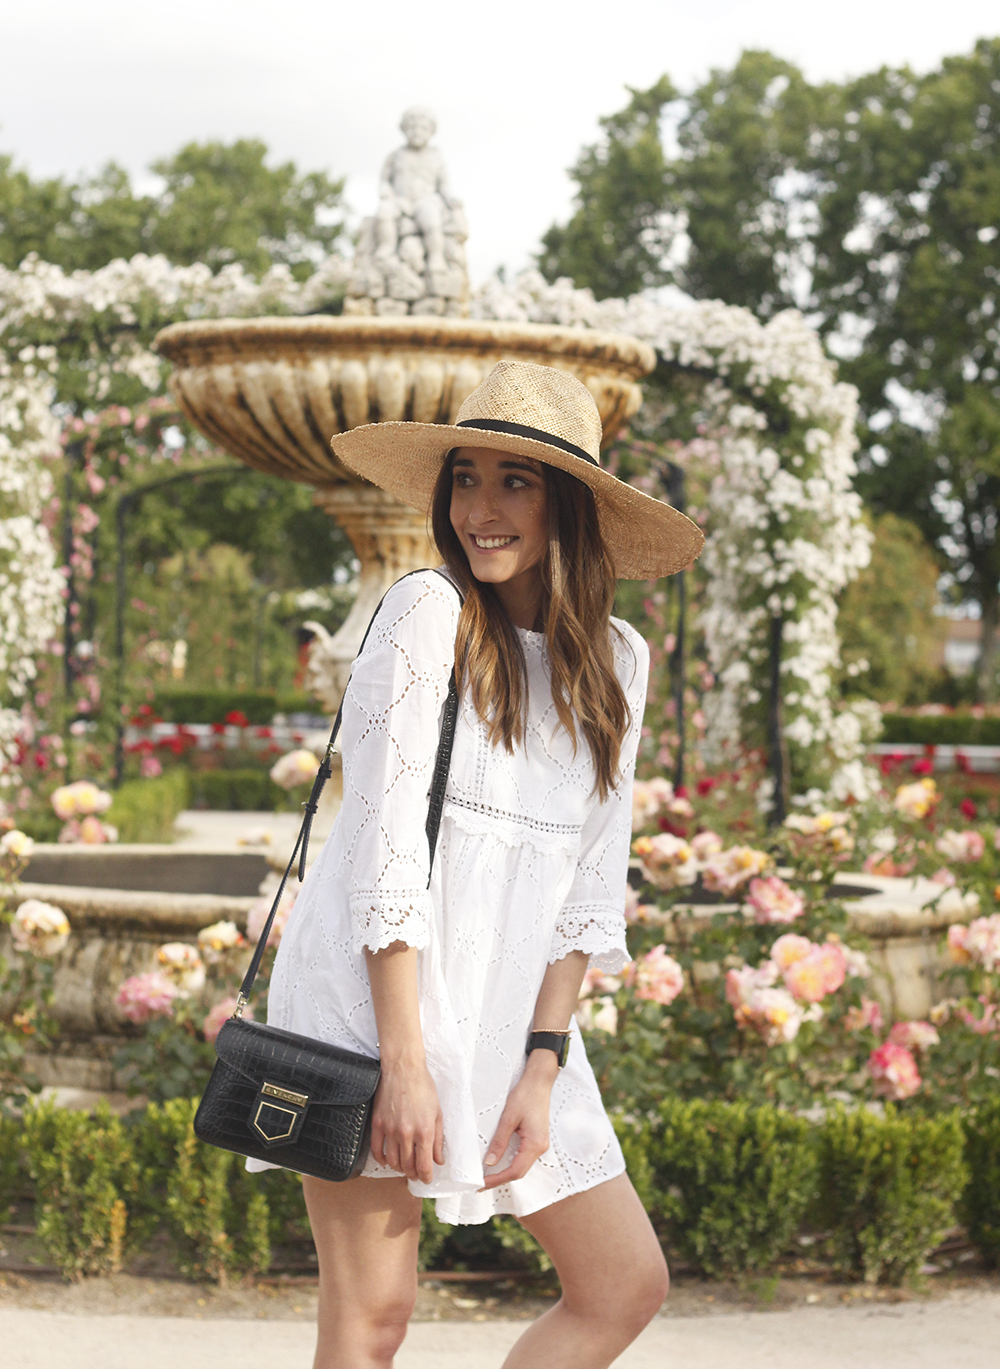 white summer dress givenchy bag street style outfit 2018 el retiro15